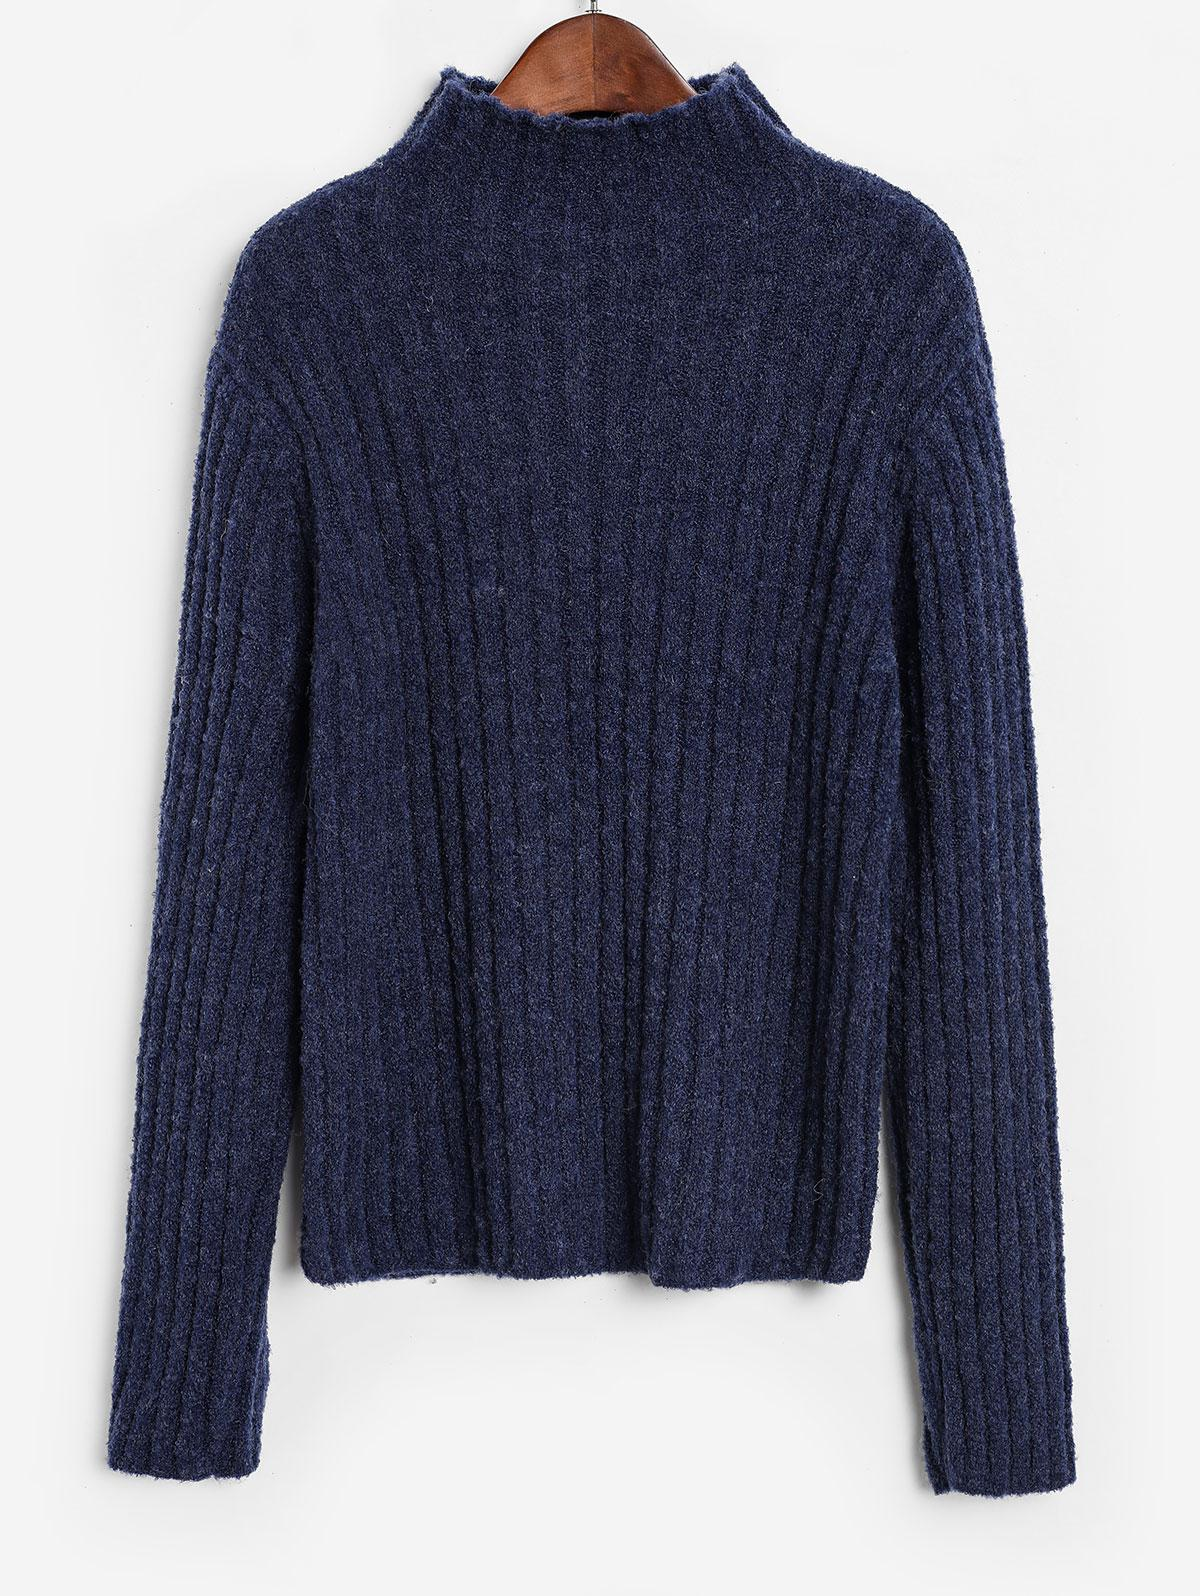 ZAFUL Basic Mock Neck Rib Knit Sweater